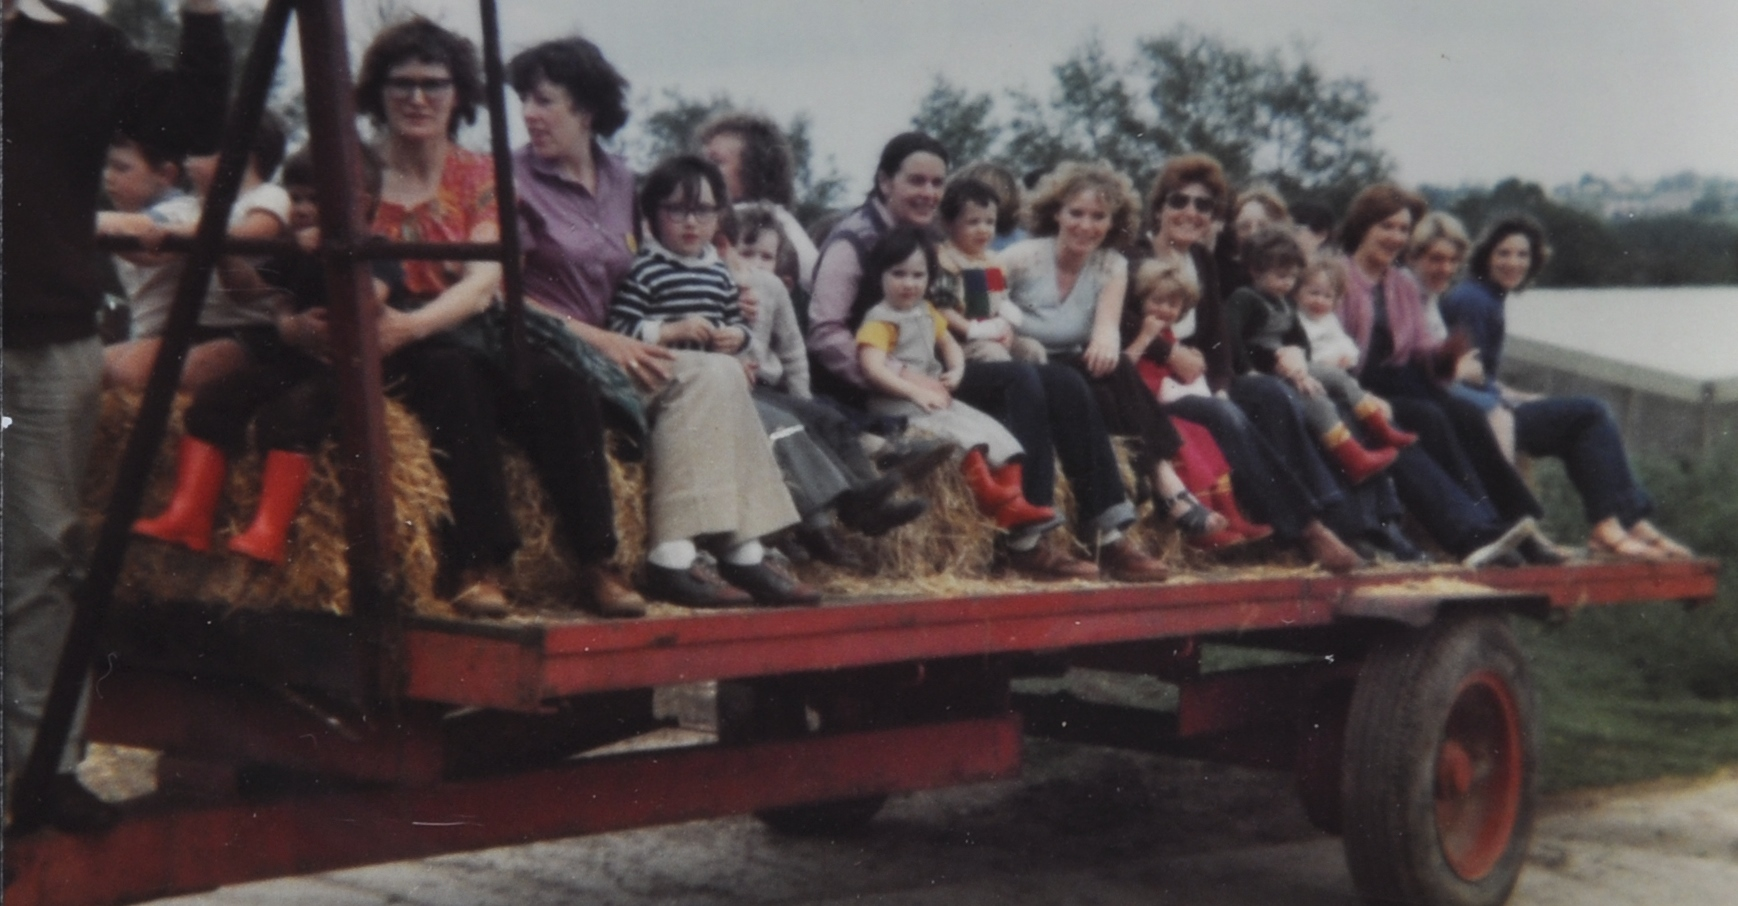 Mothers and children on a farm trailer, c. 1975